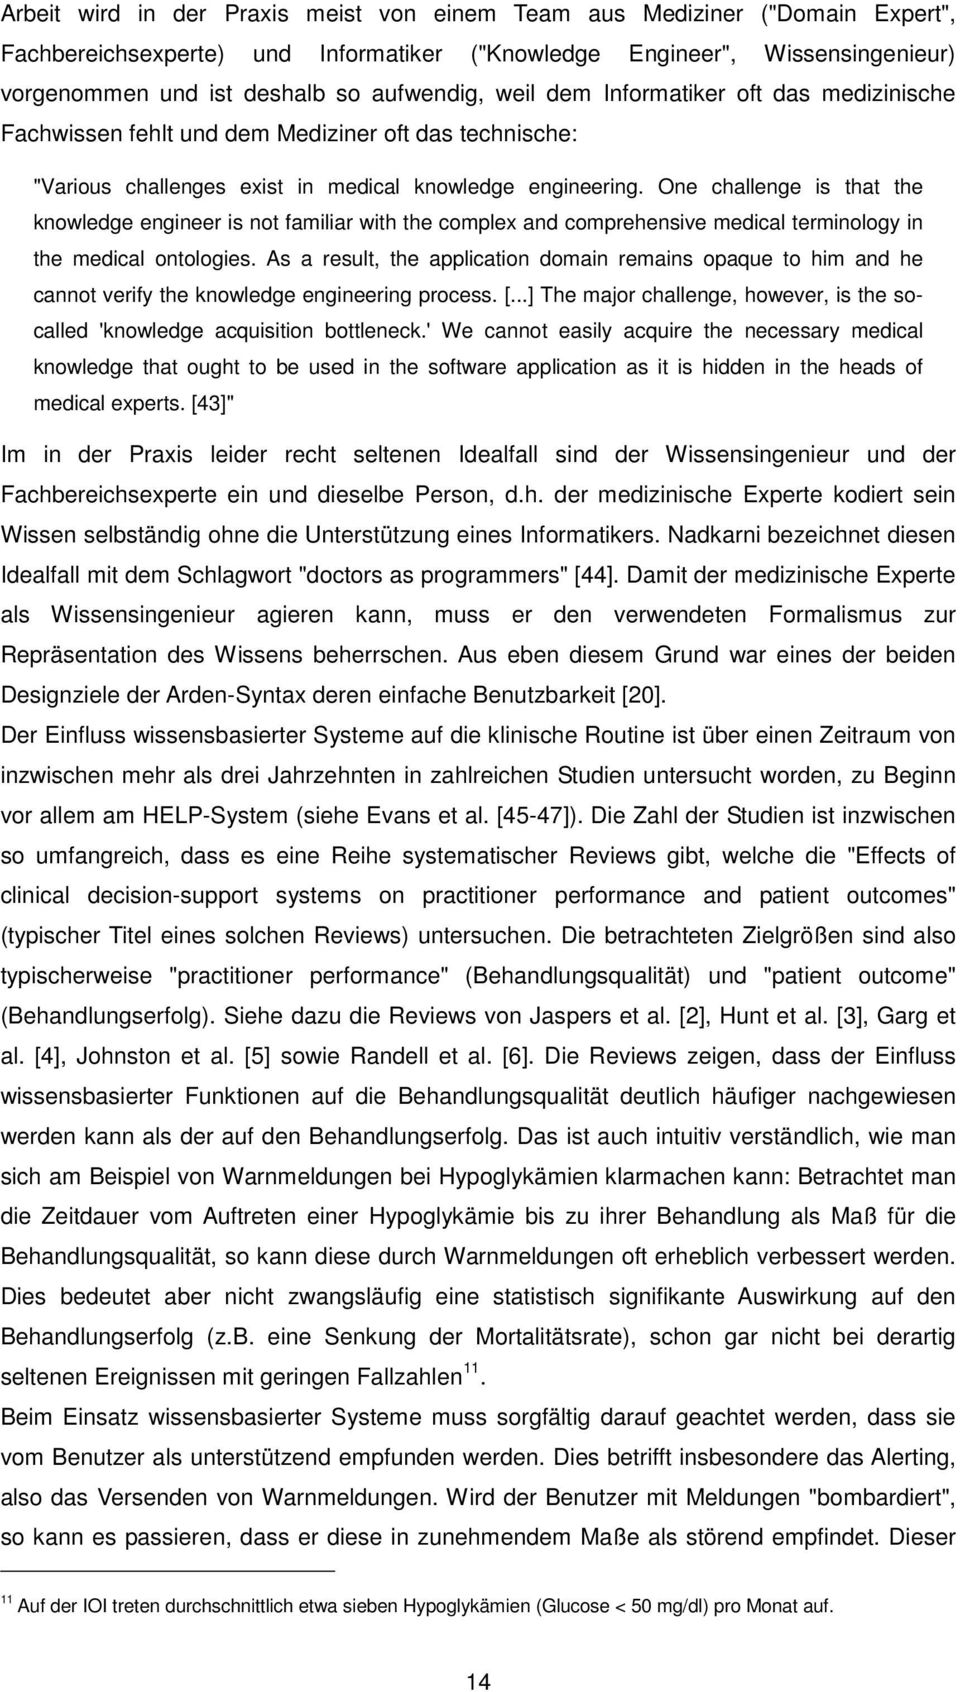 One challenge is that the knowledge engineer is not familiar with the complex and comprehensive medical terminology in the medical ontologies.